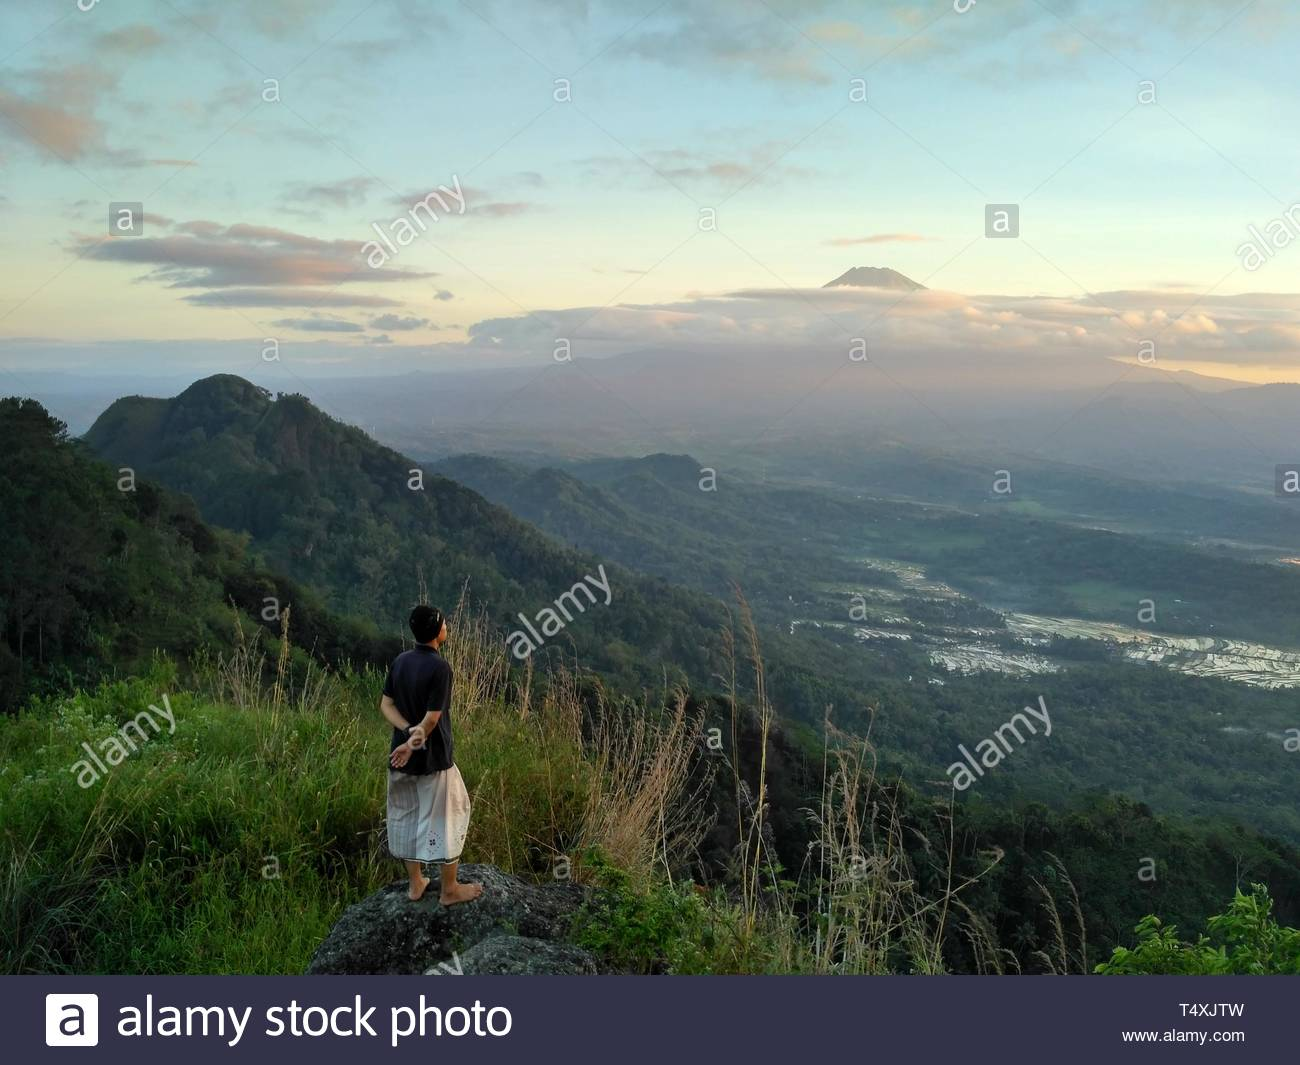 person on mountain rock - Stock Image